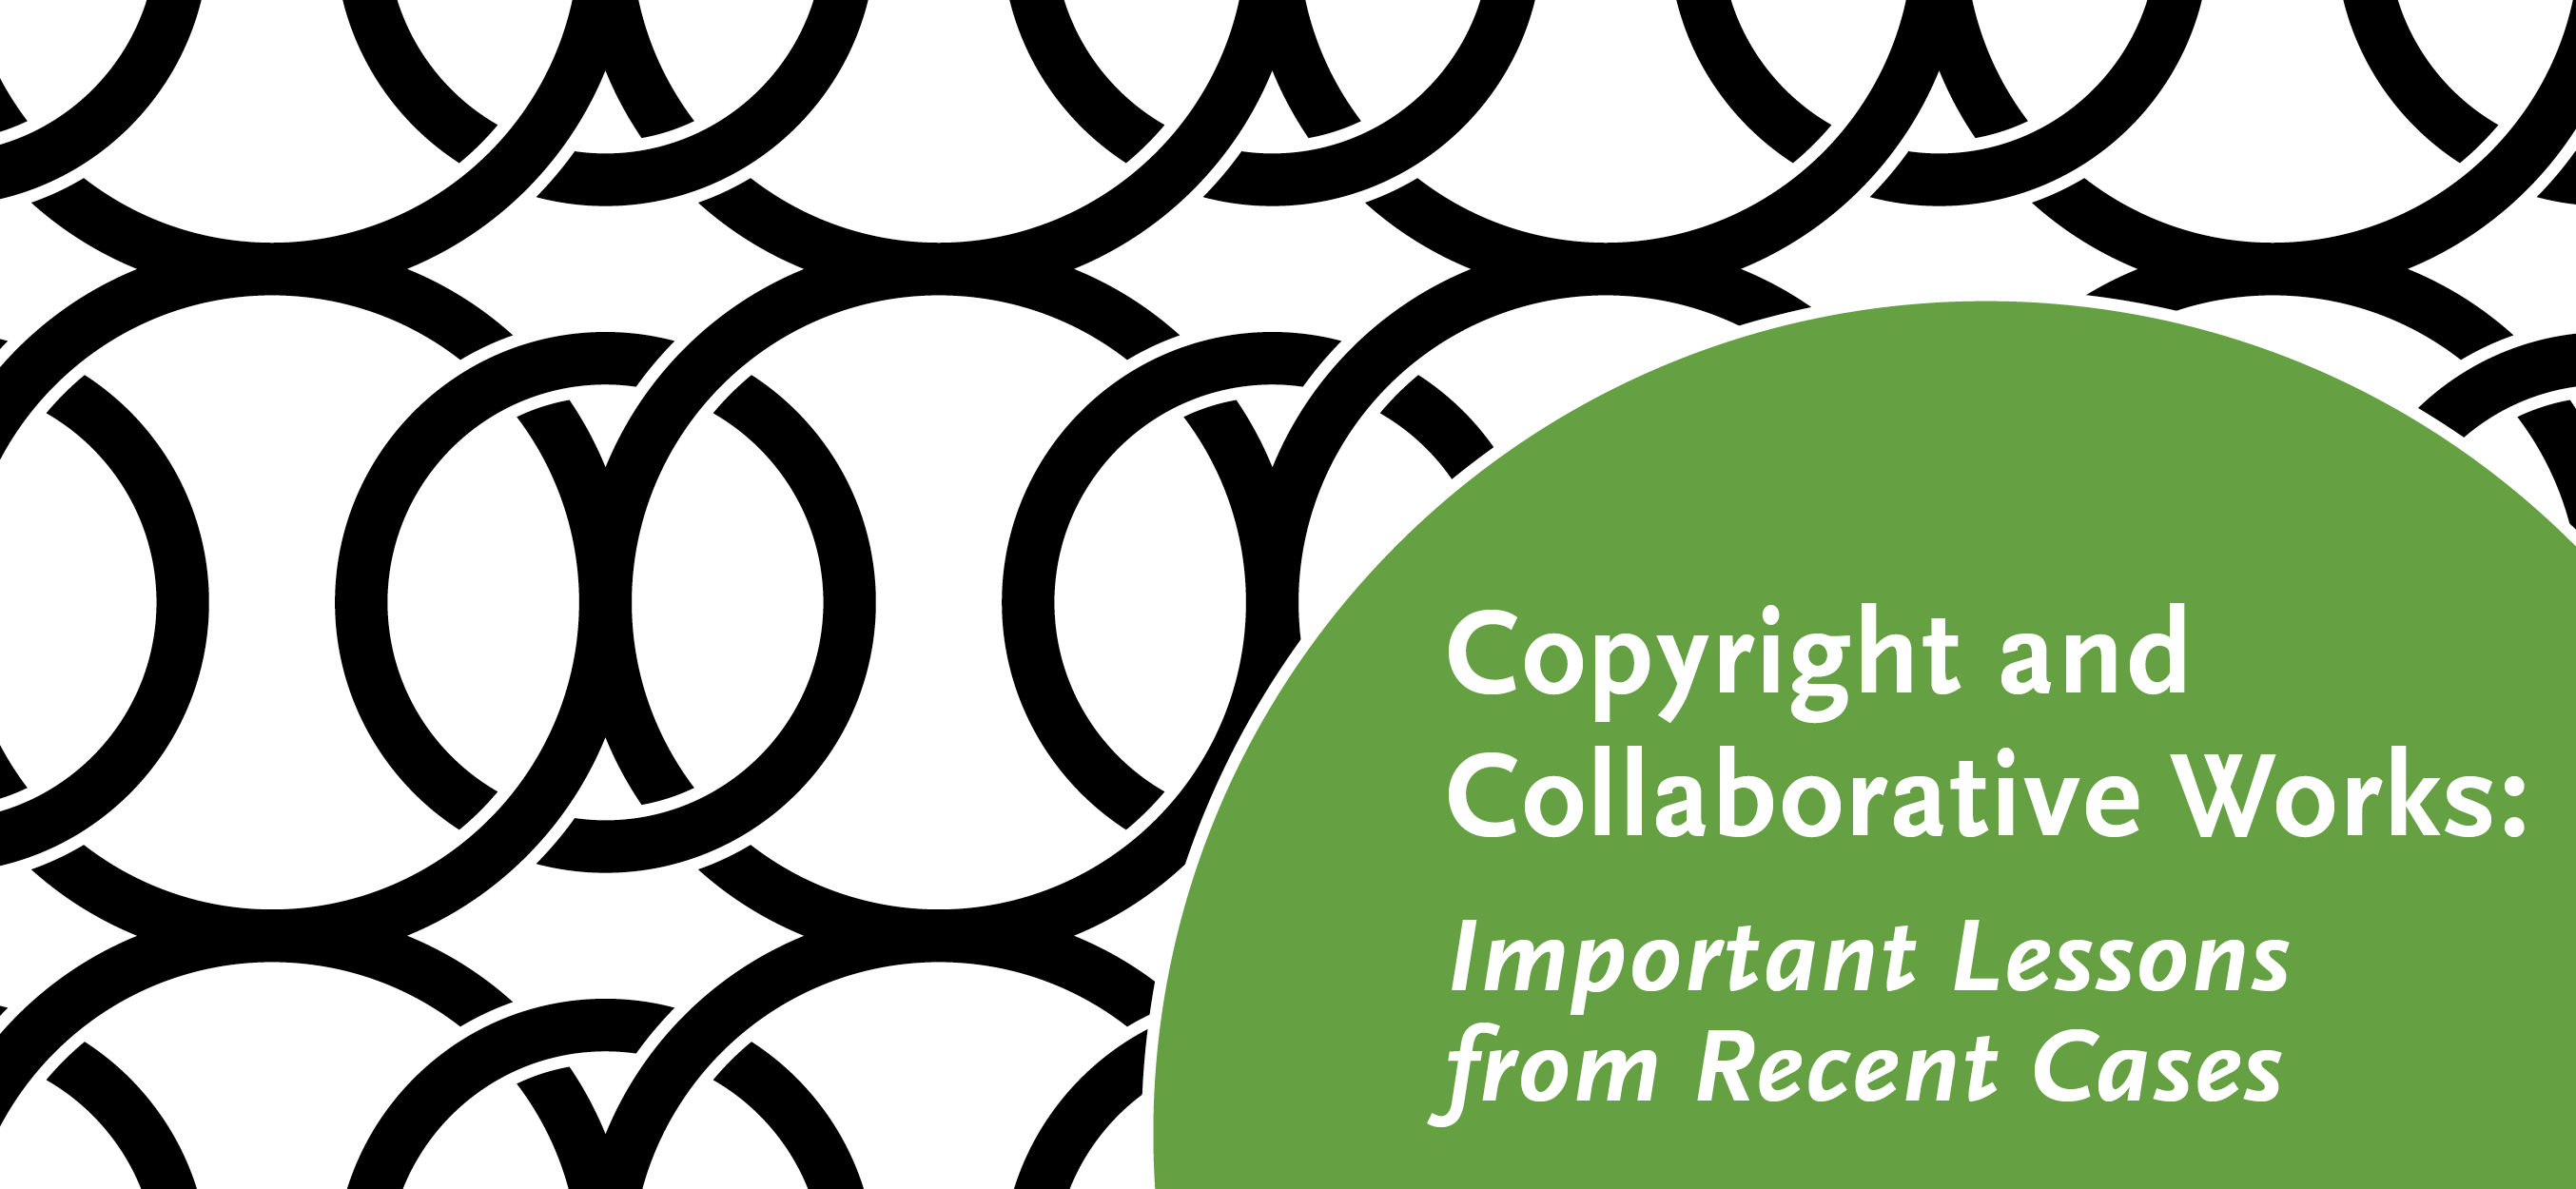 Copyright and Collaborative Works: Important Lessons from Recent Cases